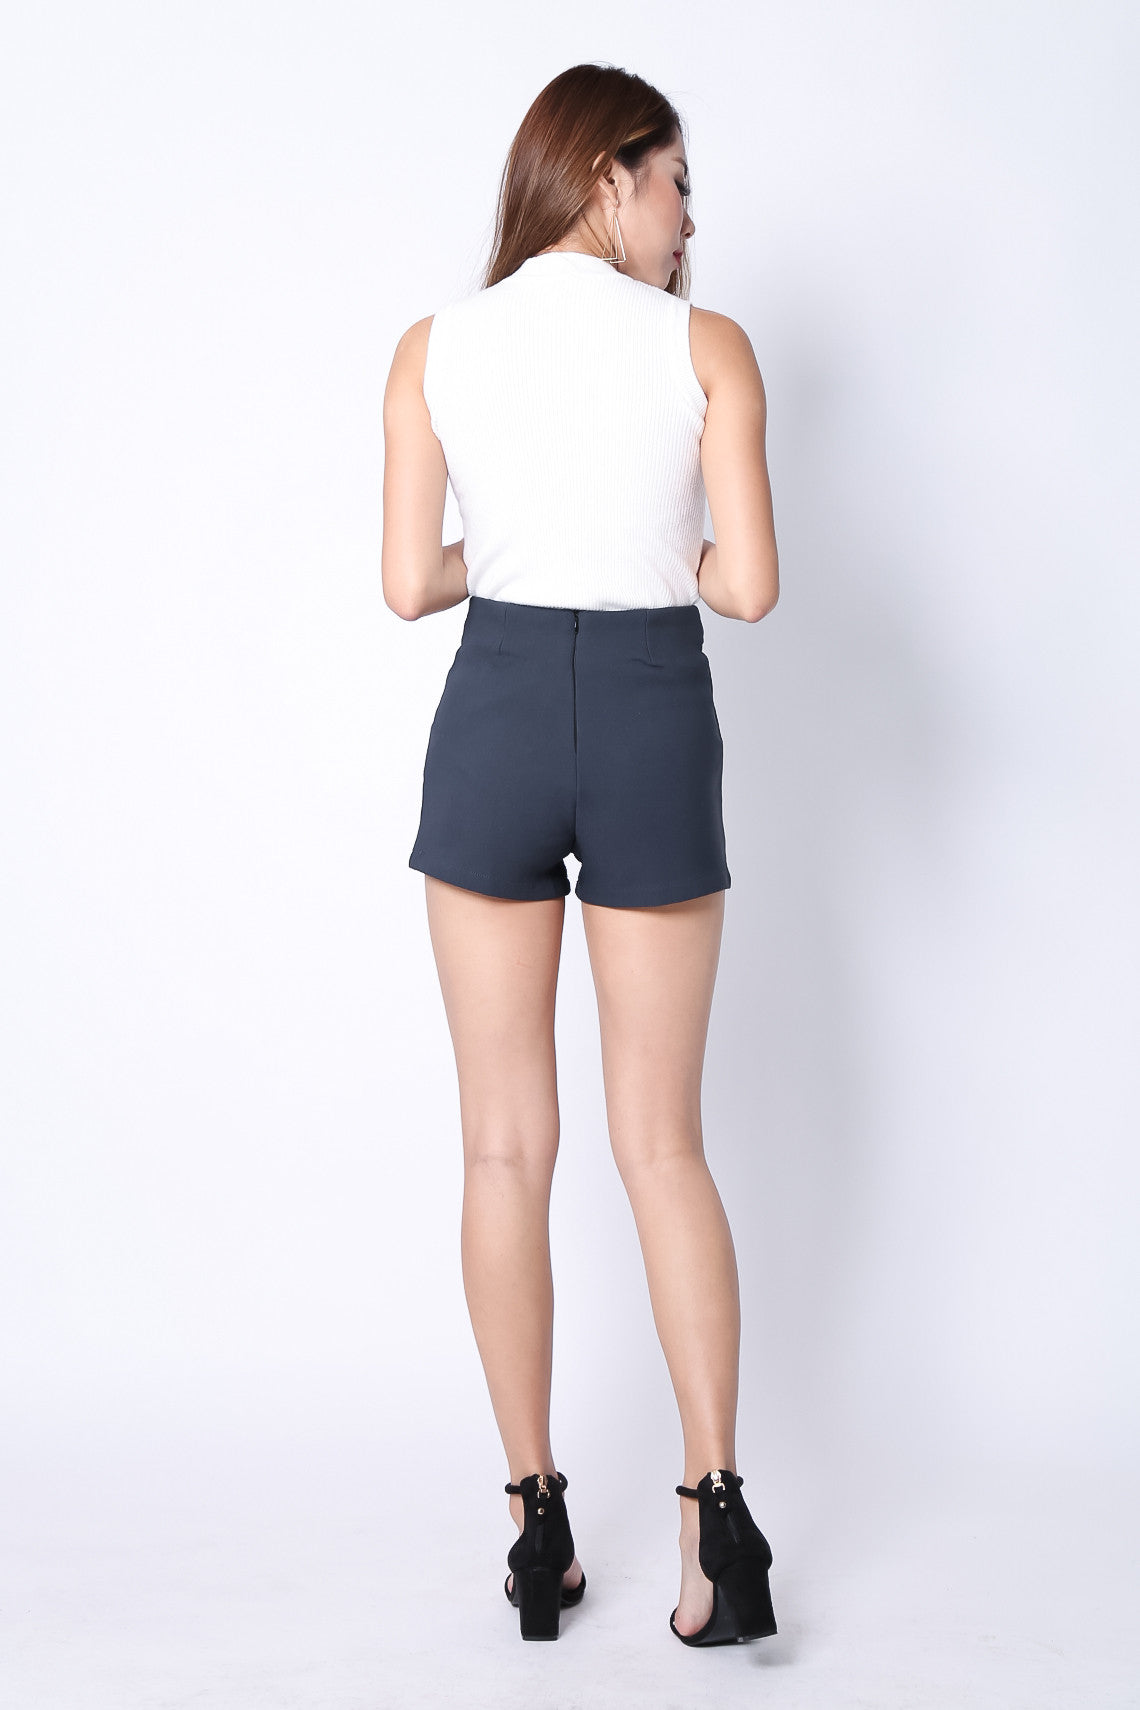 PERFECT FIT HIGH WAISTED SHORTS IN GREY